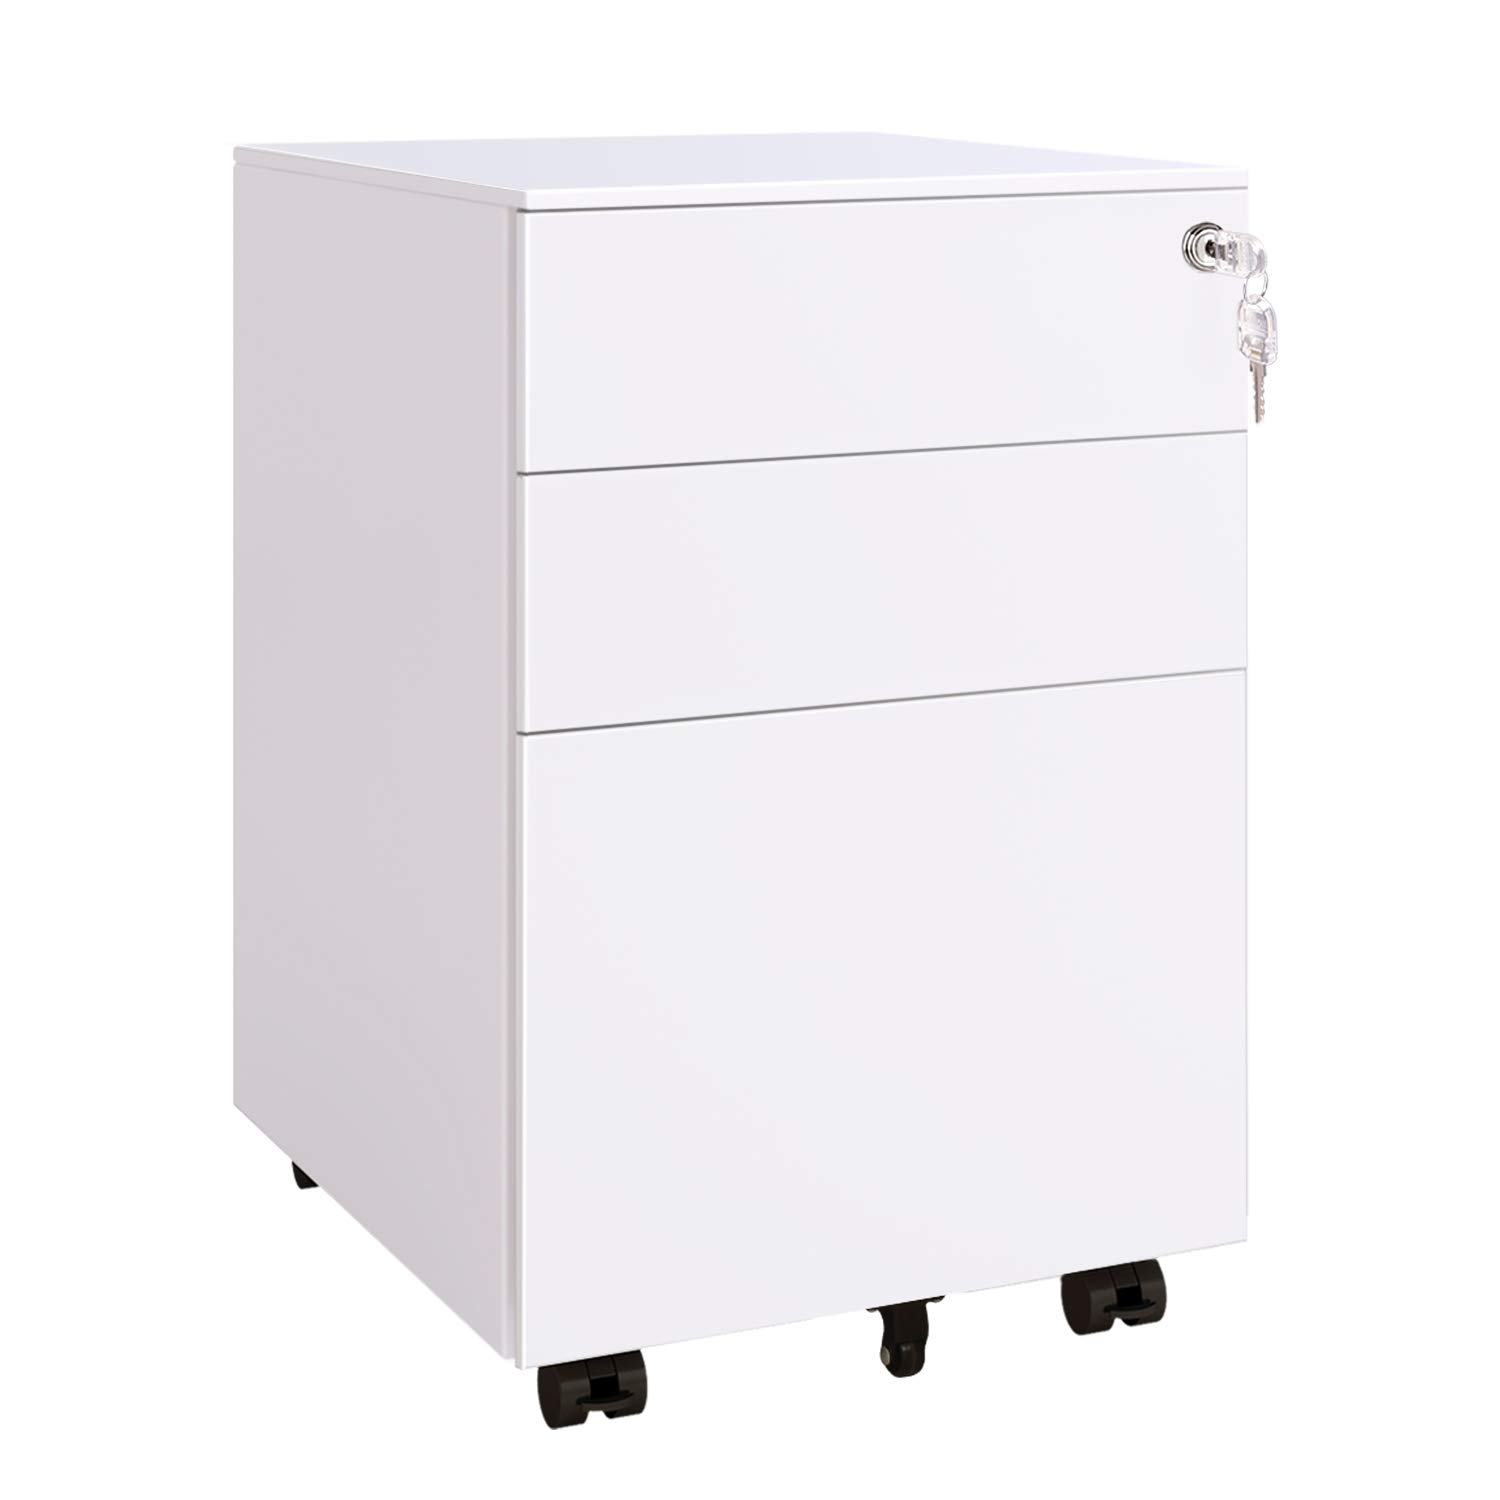 DEVAISE 3 Drawer Locking Filing Cabinet, Mobile Pedestal File Cabinet in White by DEVAISE